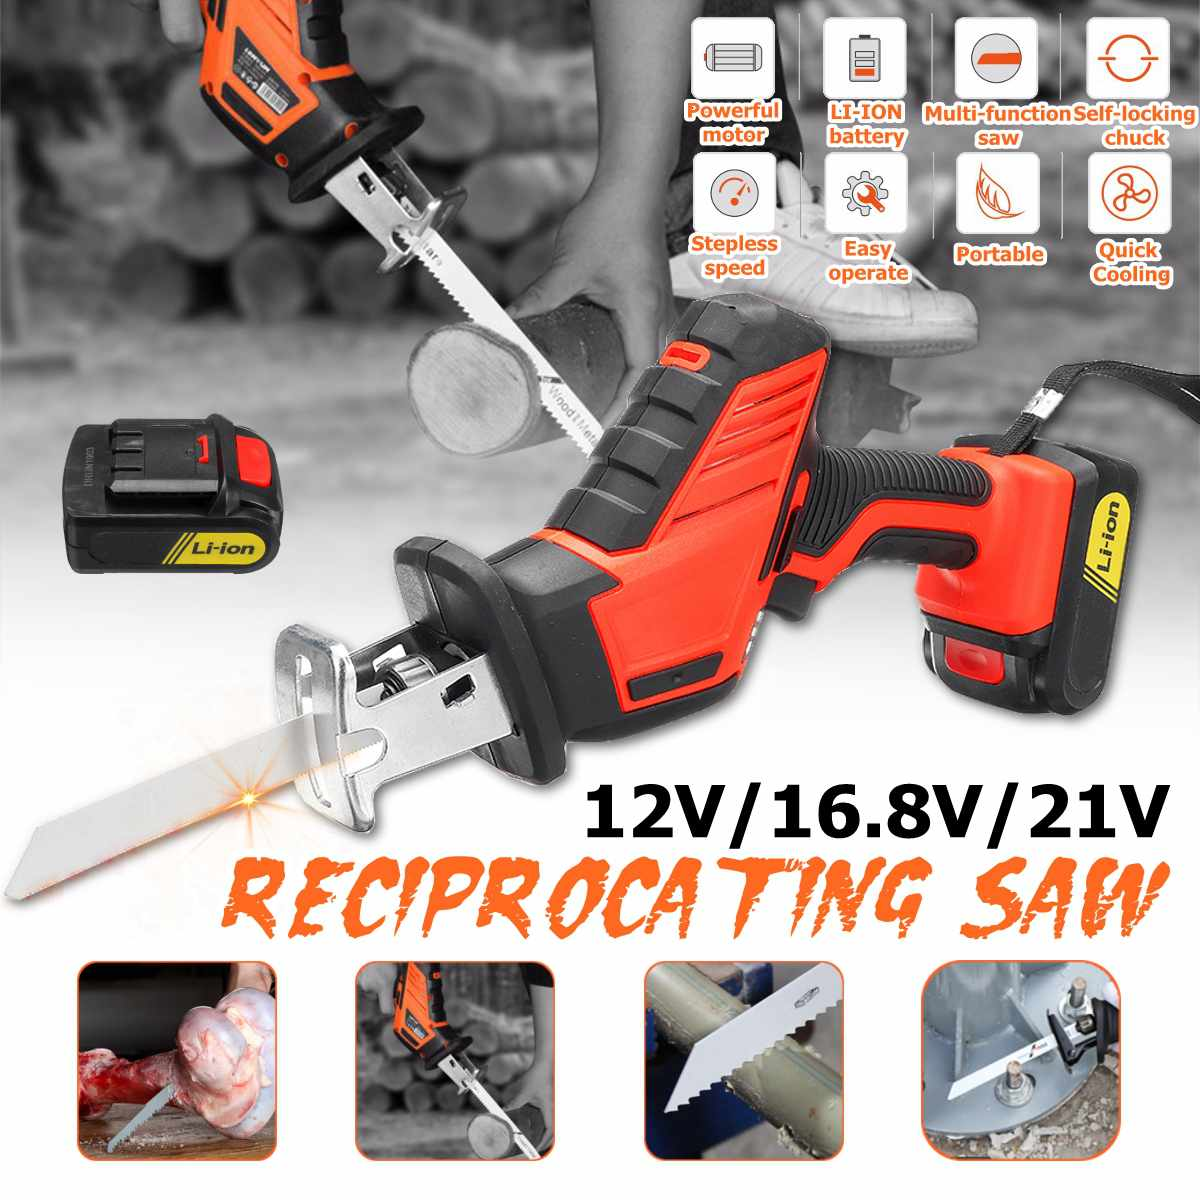 18V BRUSHLESS Cordless Reciprocating Saw Portable Replacement Electric Saw Metal Wood Cutting Machine Tool with Makita Battery